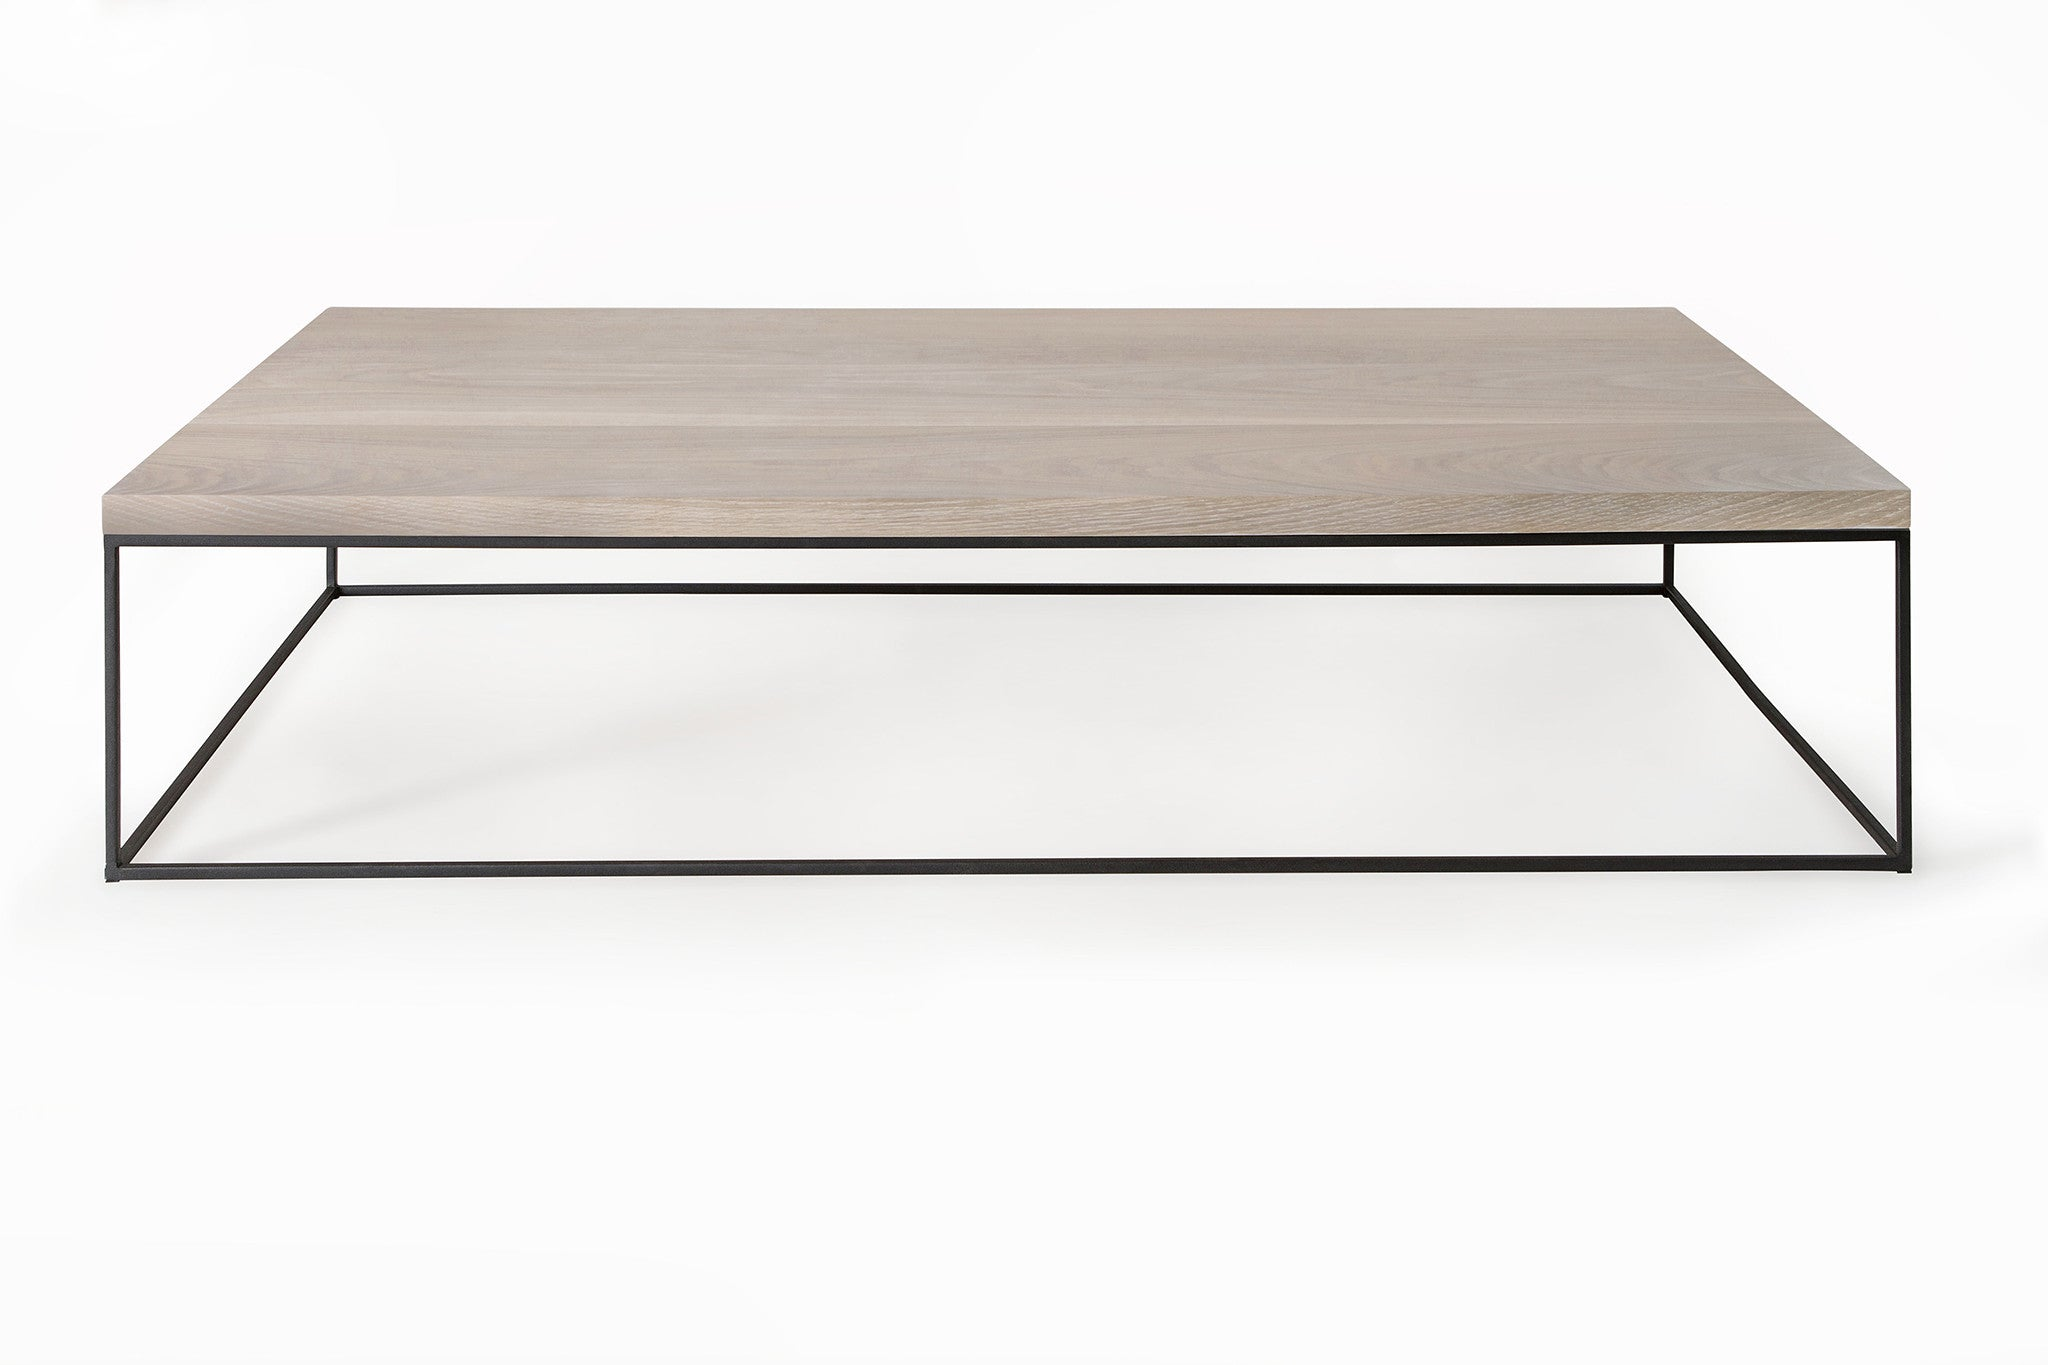 Mirage coffee table white oak origo mirage coffee table white oak geotapseo Image collections